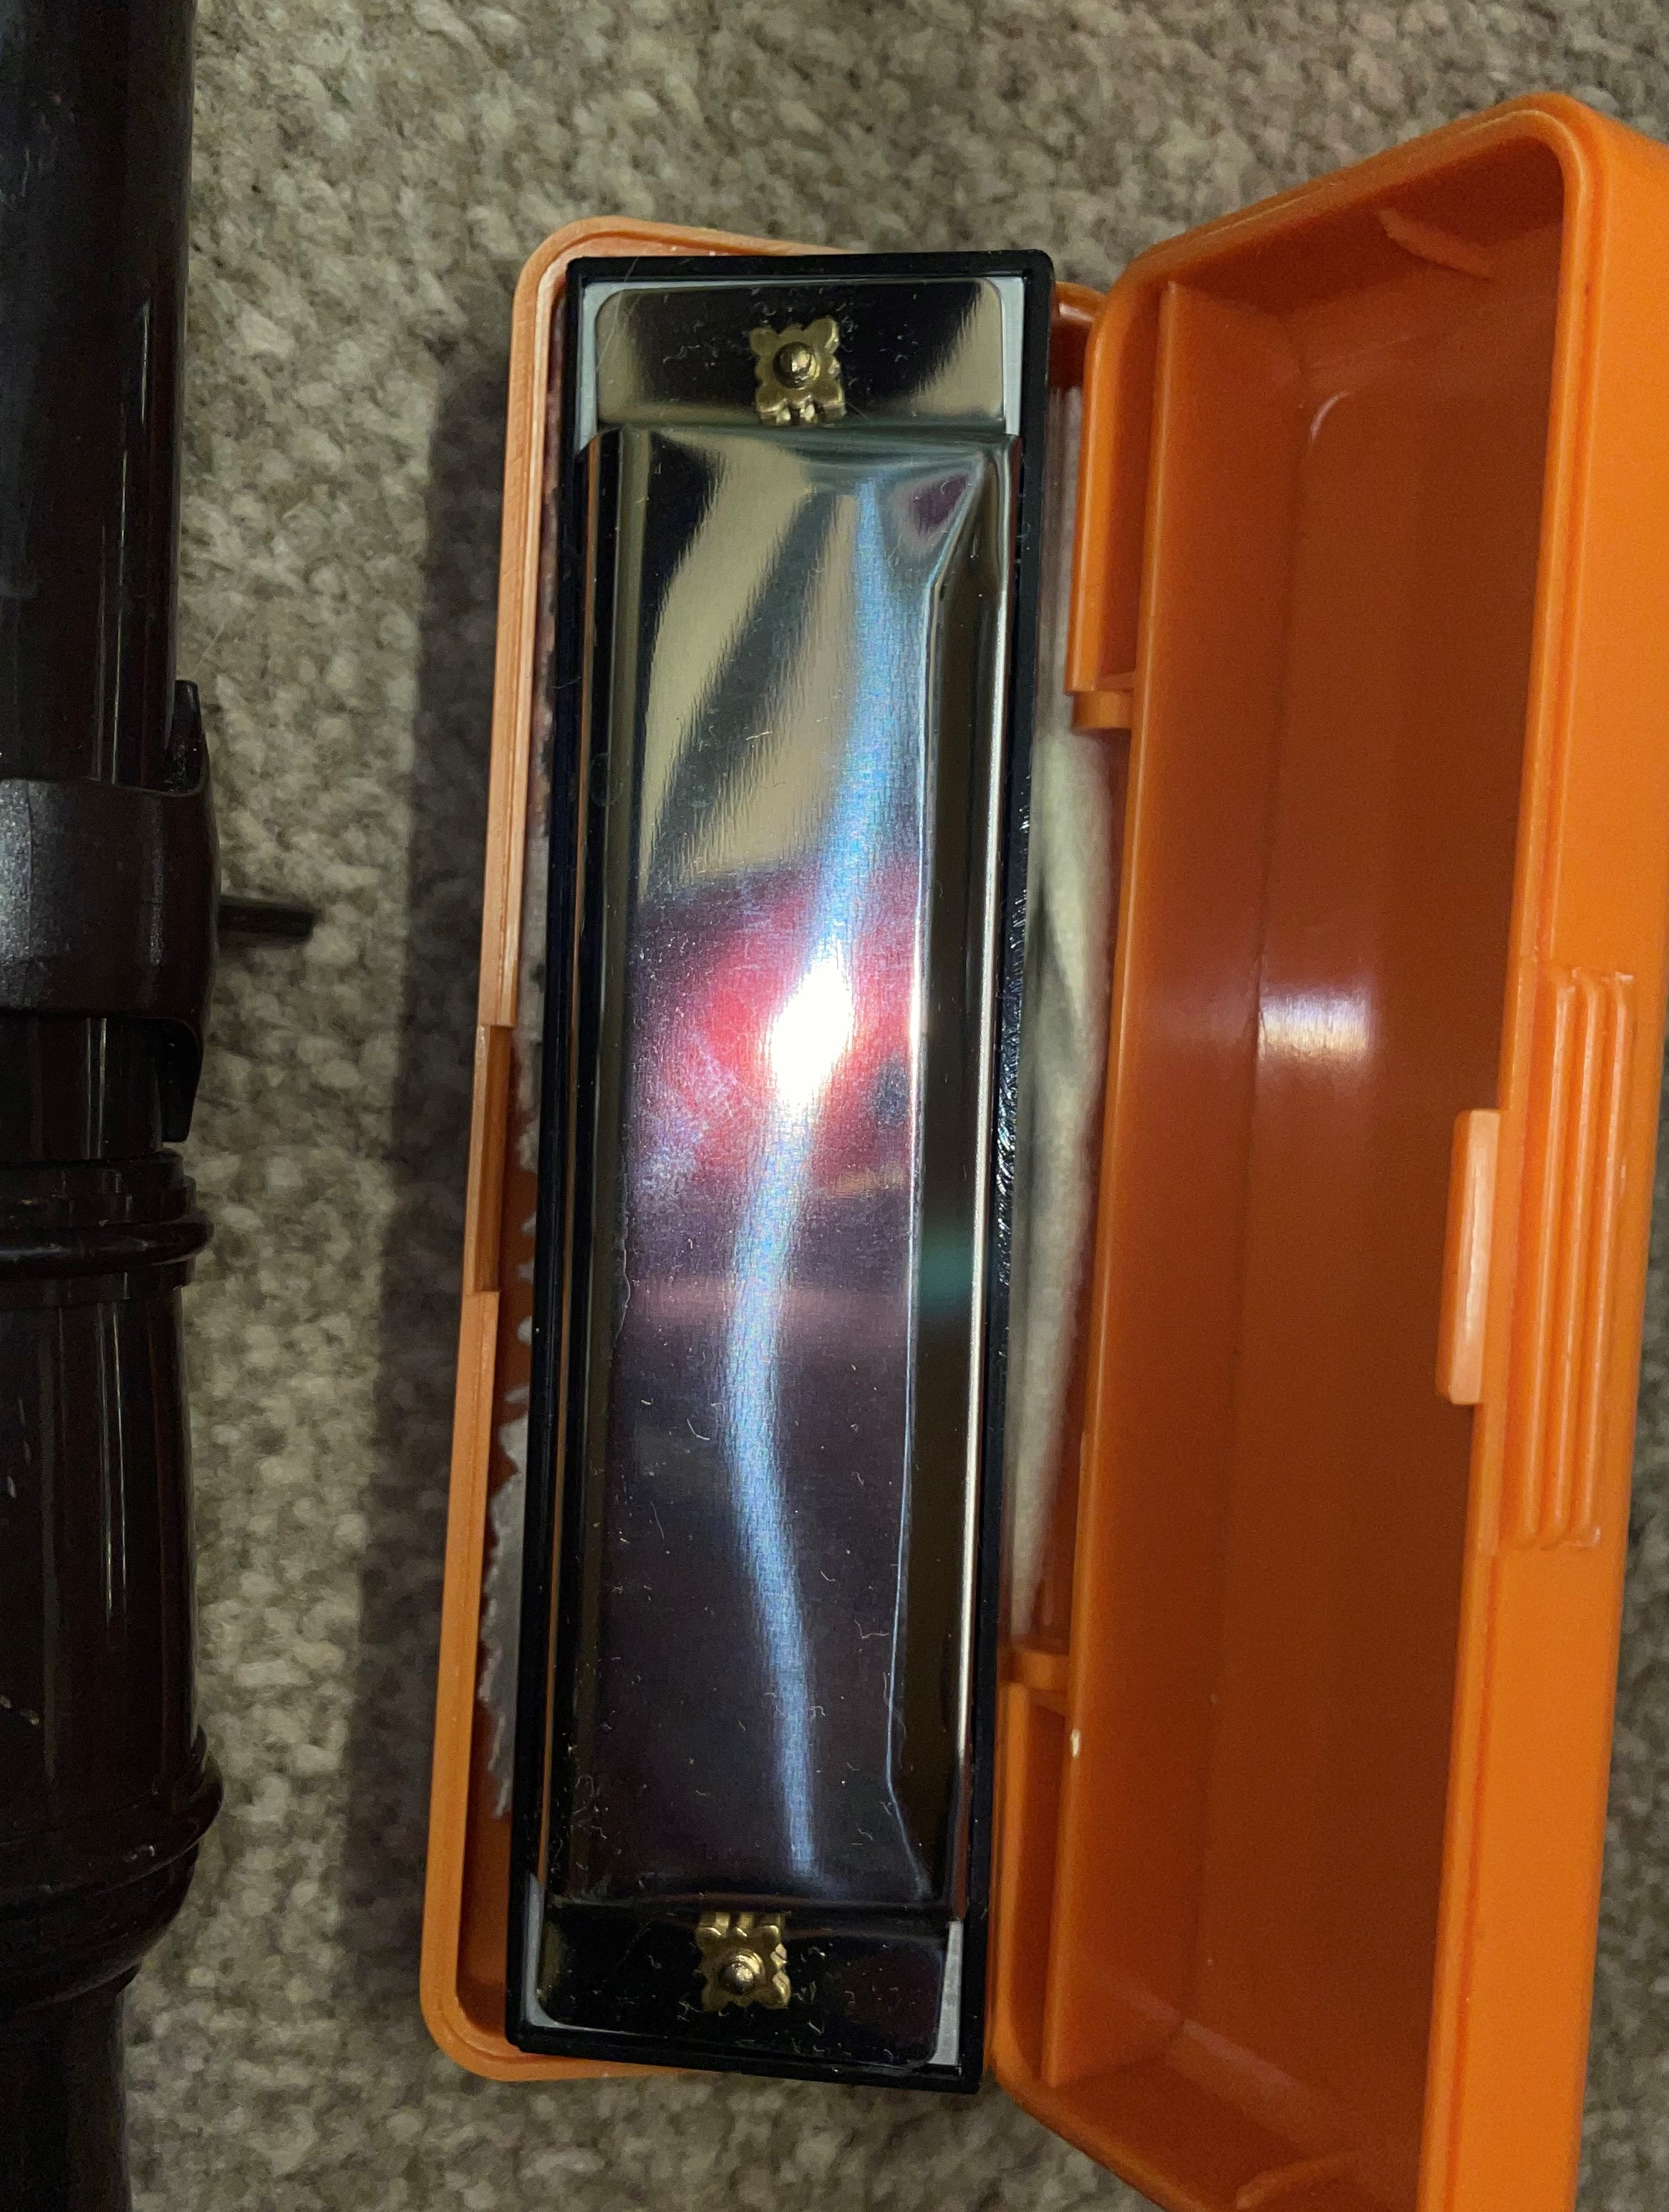 AULUS RECORDER AND TWO HARMONICAS - Image 2 of 2